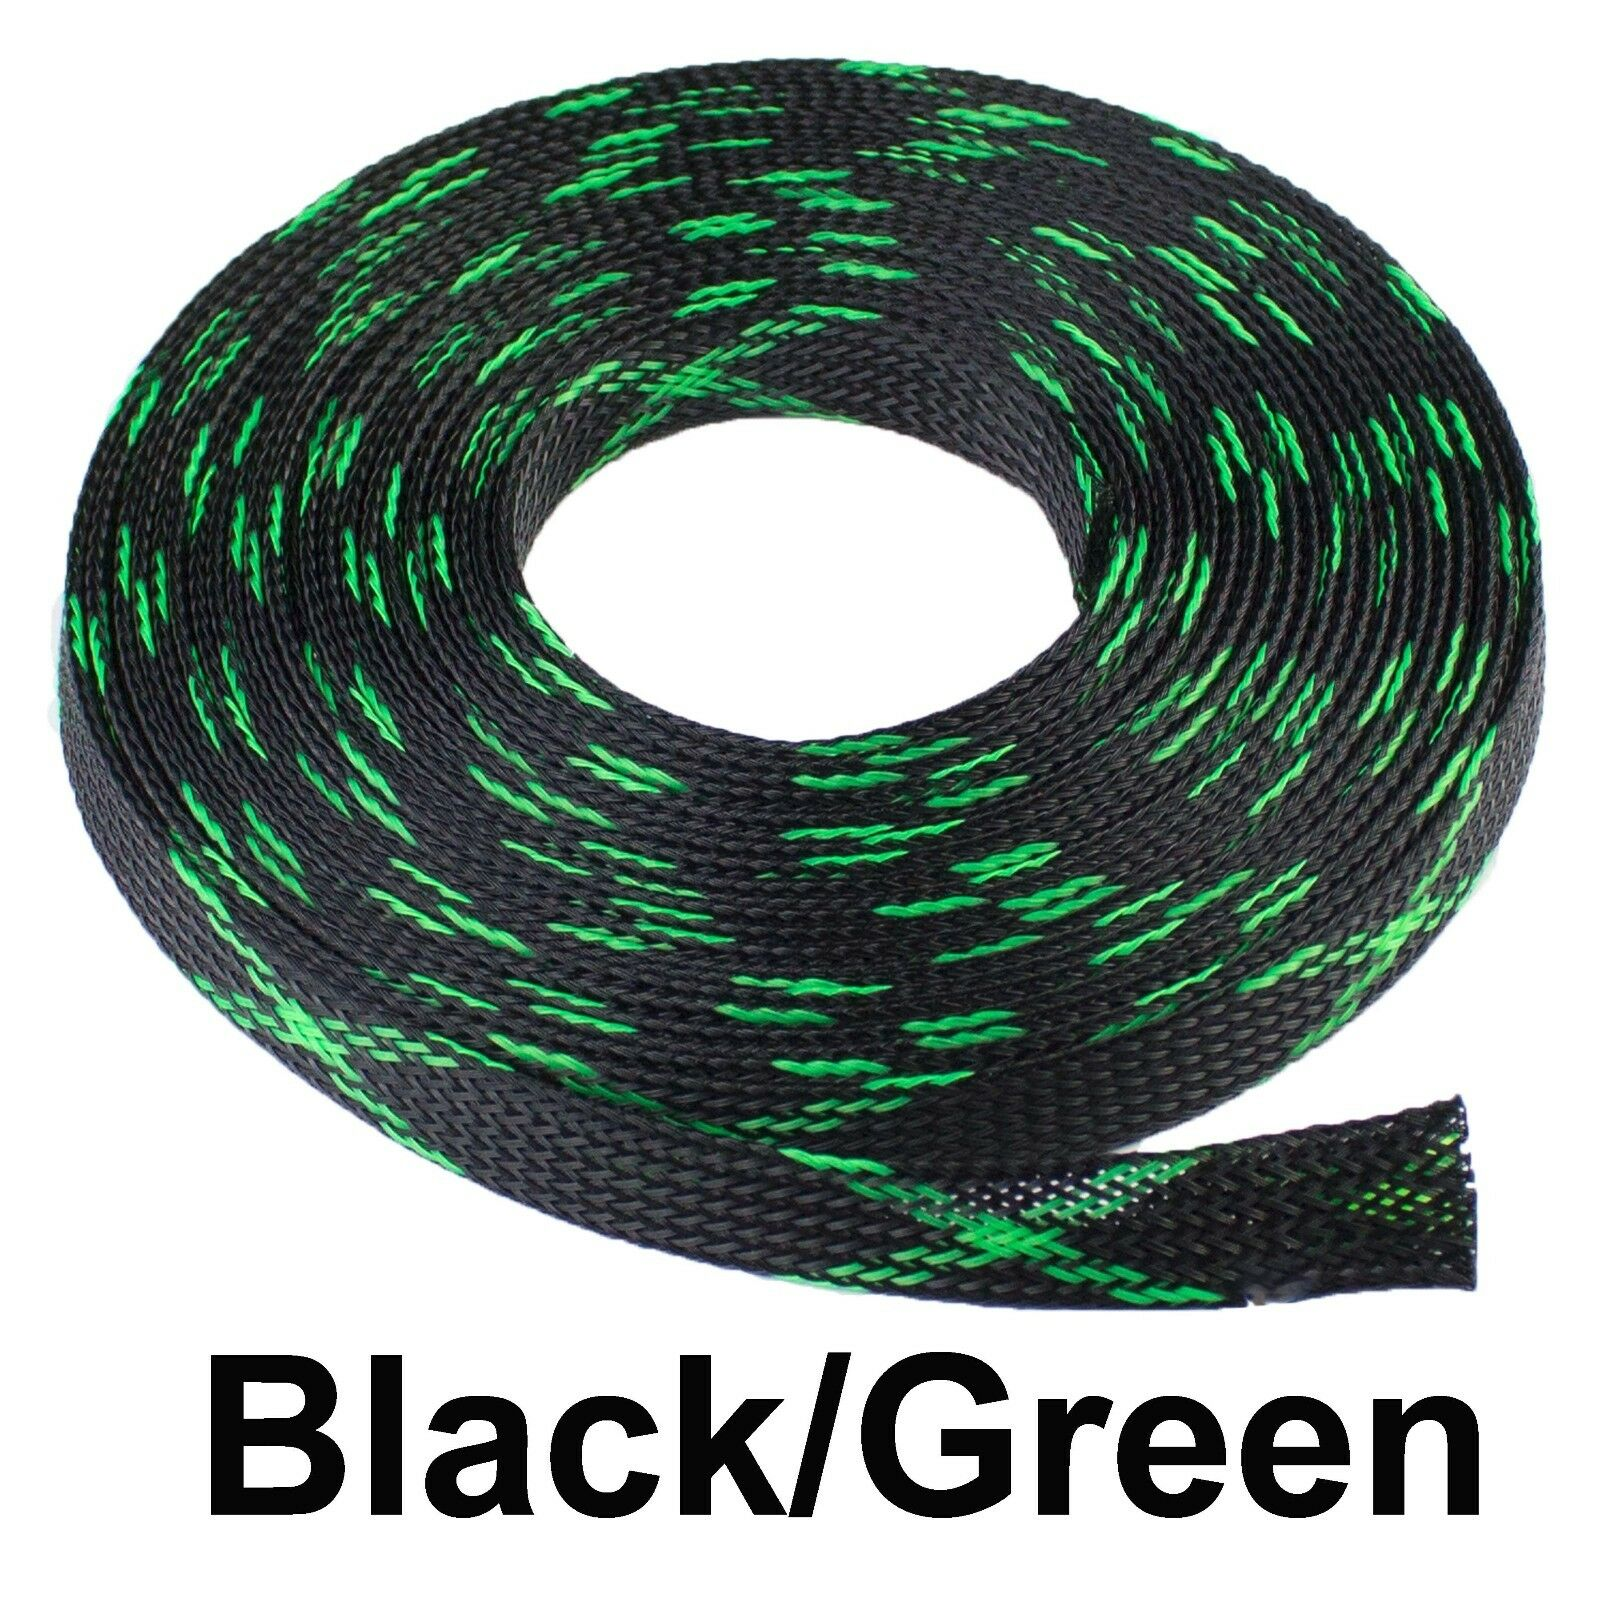 ALL SIZES & COLORS 5' FT - 100 Feet Expandable Cable Sleeving Braided Tubing LOT Black Green